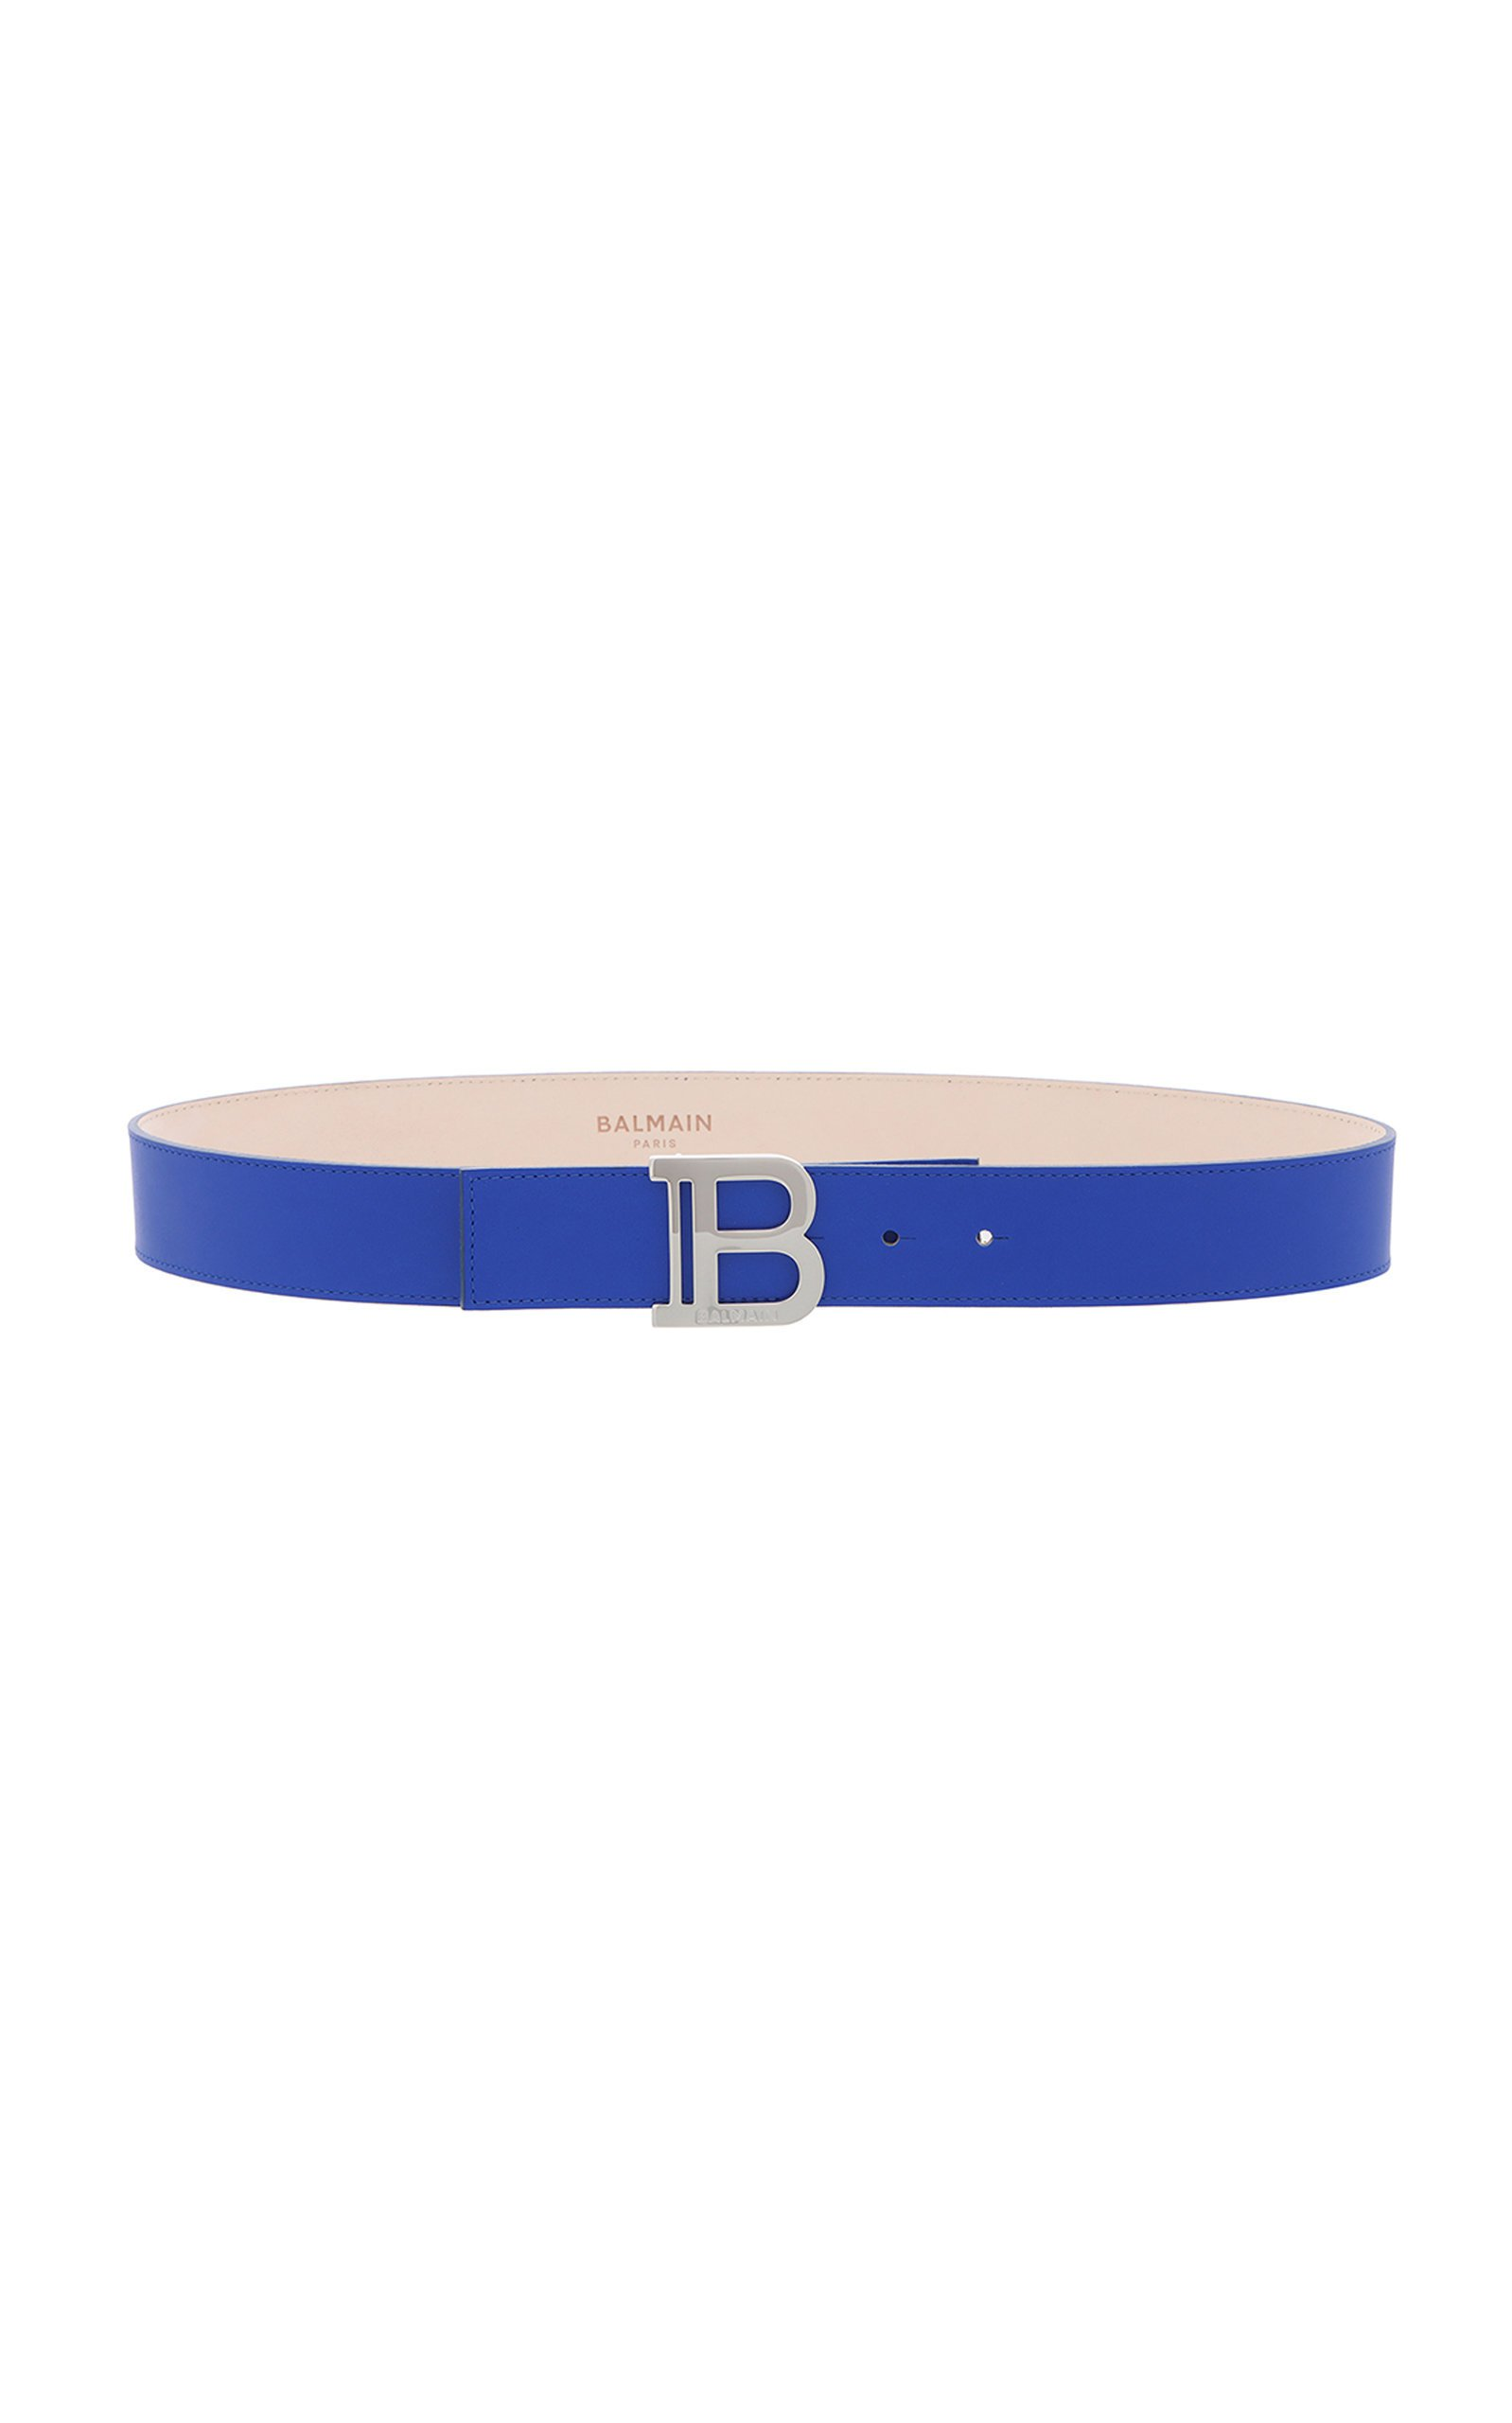 Balmain Signature Leather B-Belt Size: 95 cm